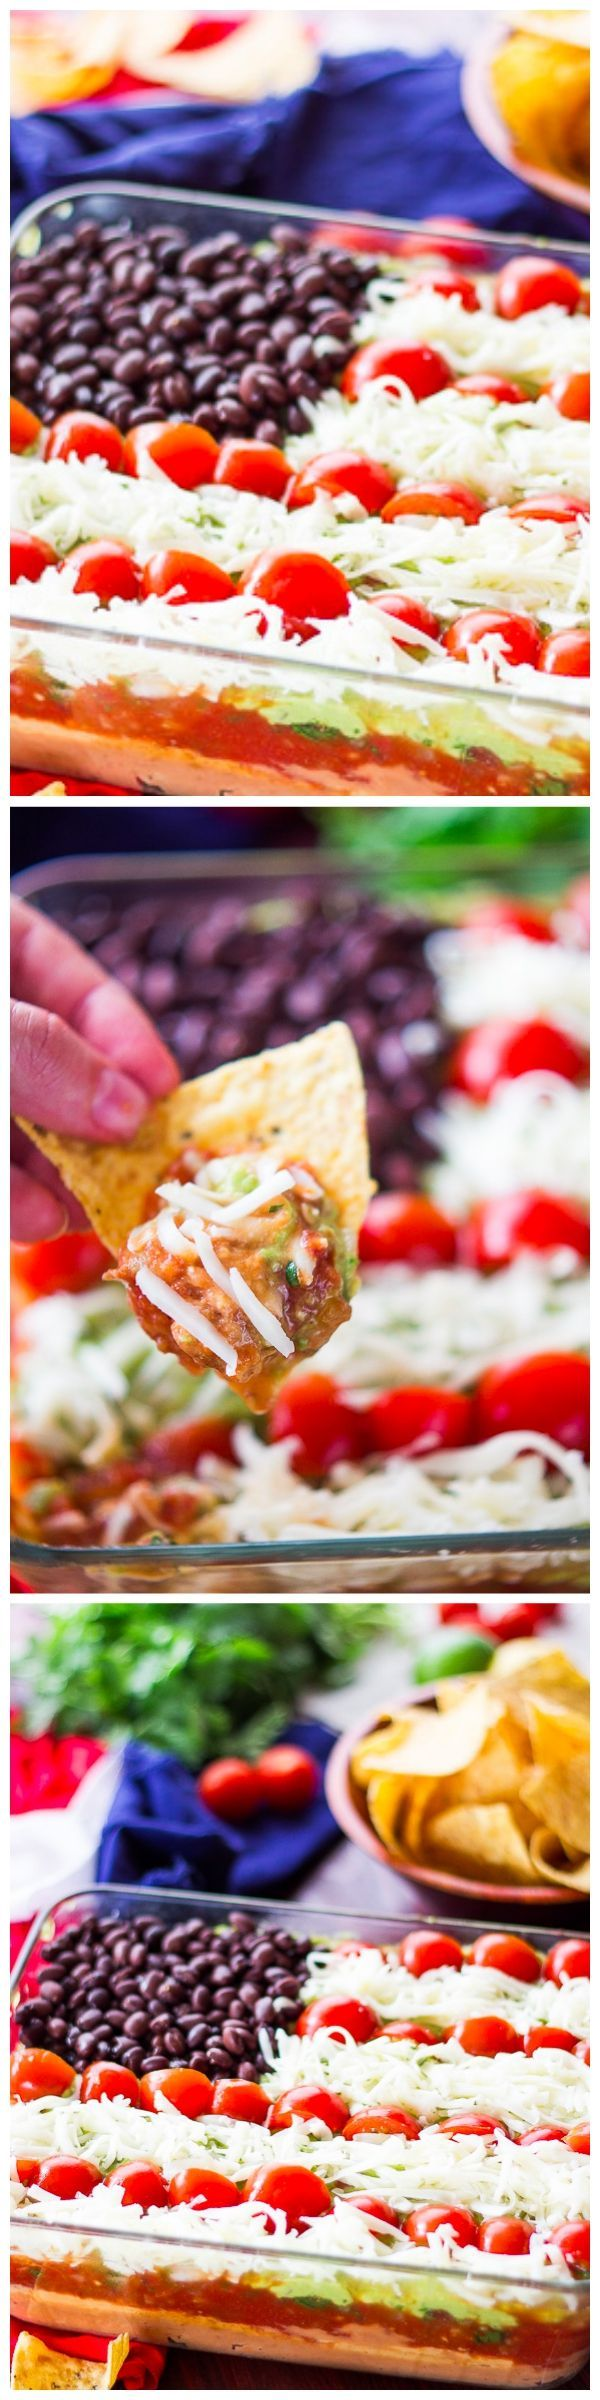 Lightened Up 7 Layer Dip 4th of July Food Ideas, #recipe #party